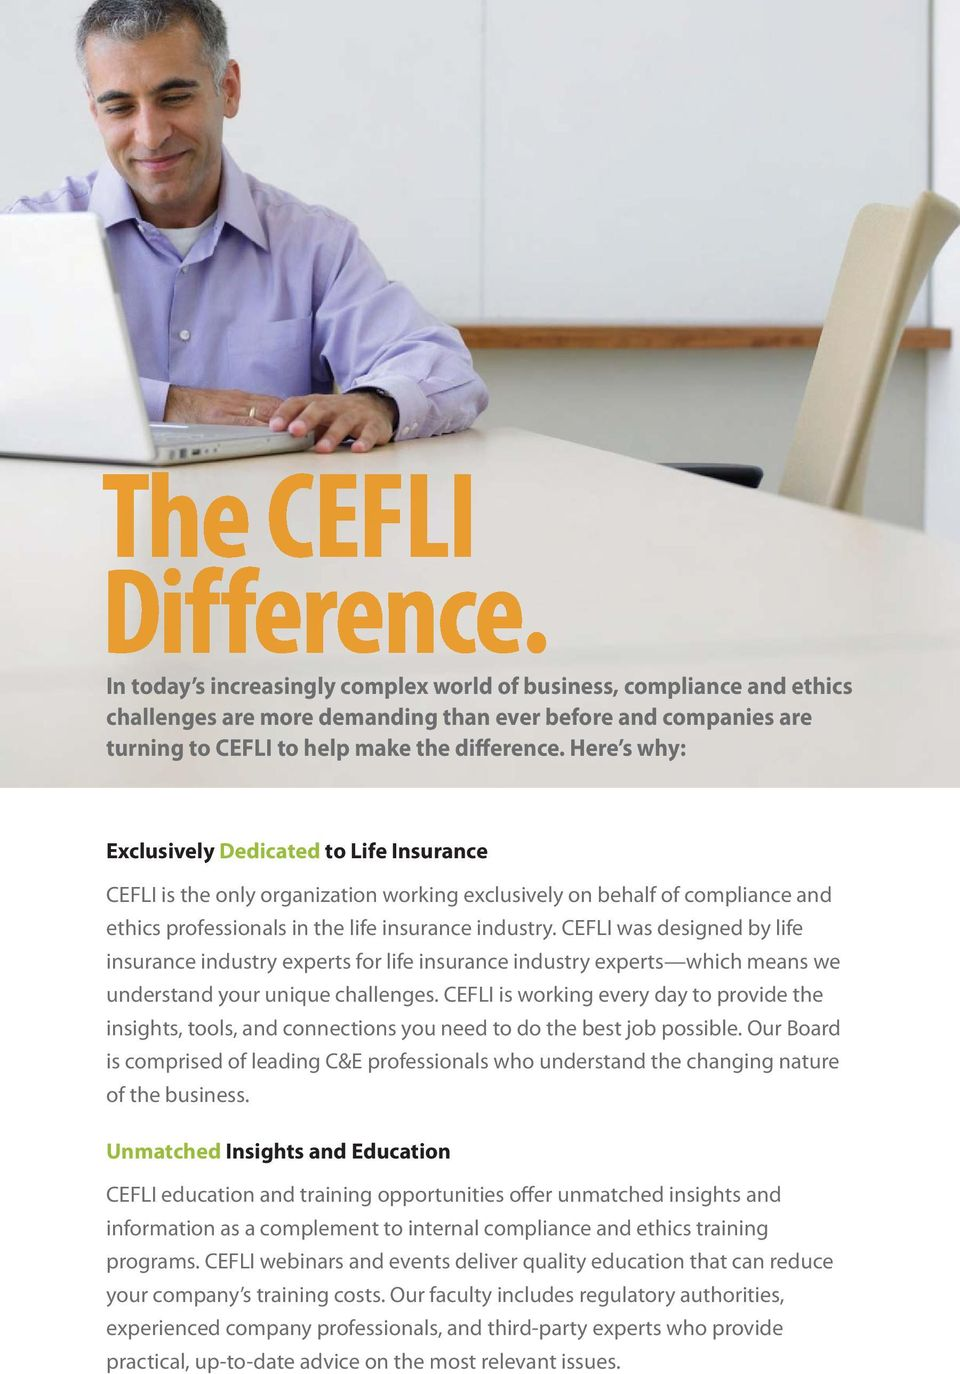 CEFLI was designed by life insurance industry experts for life insurance industry experts which means we understand your unique challenges.